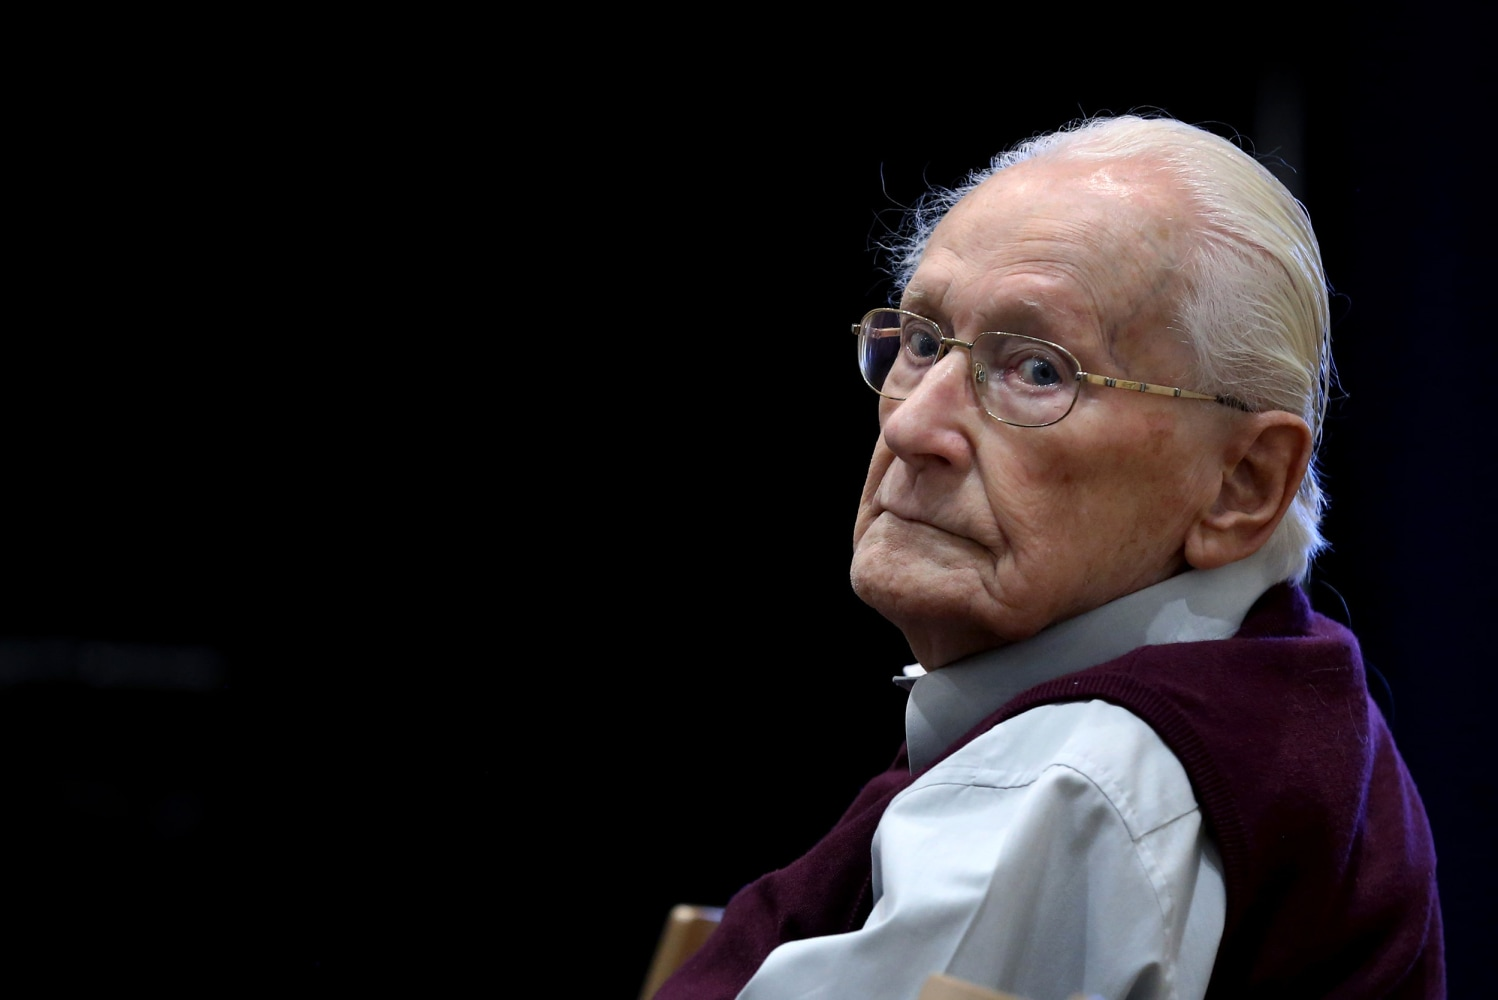 96-Year-Old Auschwitz Bookkeeper Faces Imprisonment For War Crimes